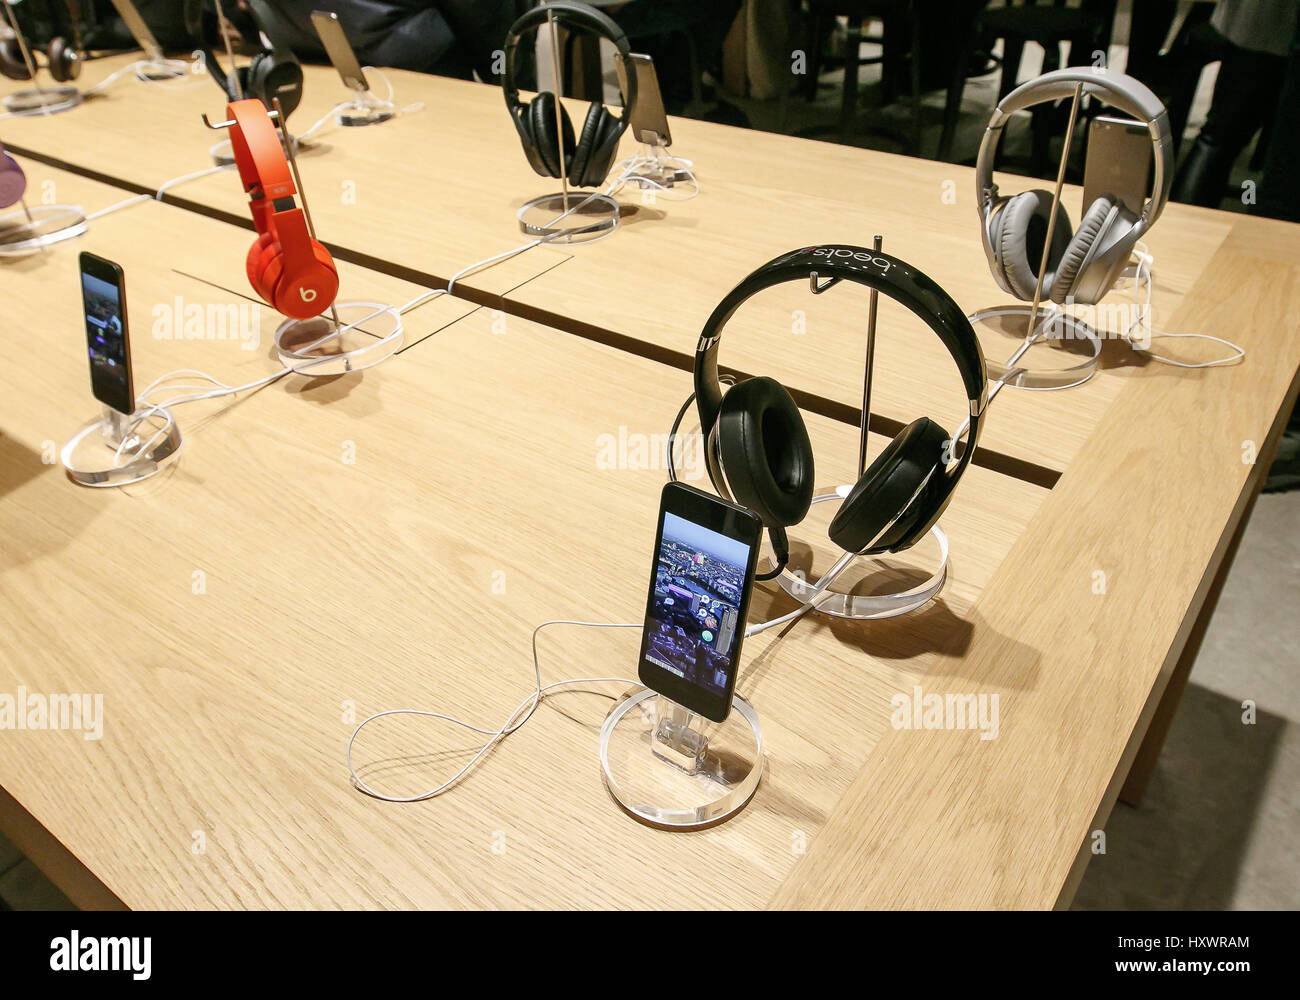 The new iPod Touch and Beats headphones are set on display in an Apple store . 40def2572